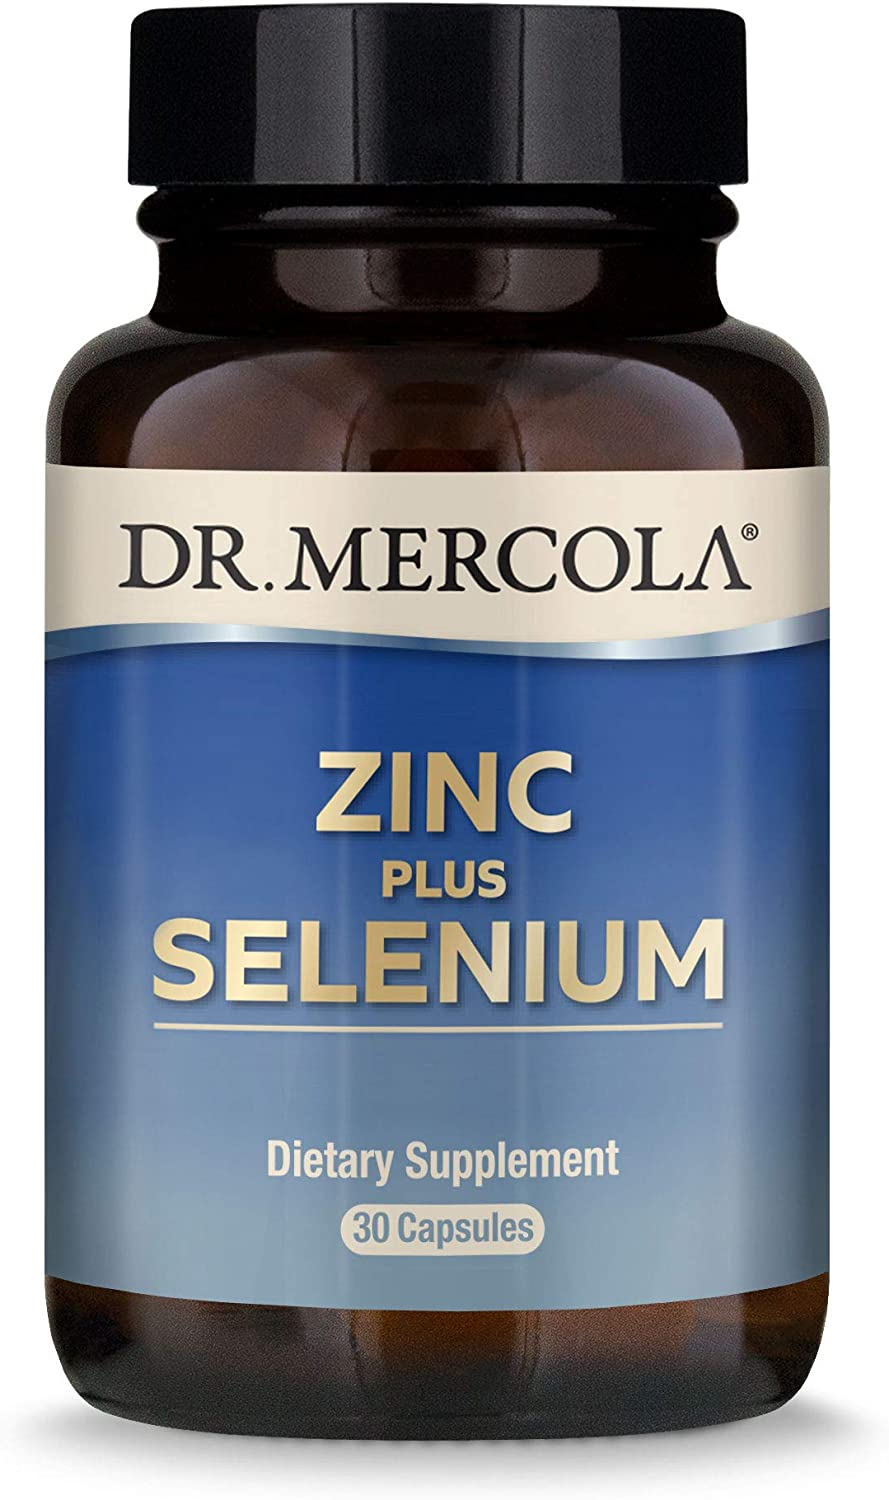 Dr. Mercola Zinc Plus Selenium Dietary Supplement, 30 Servings (30 Capsules), Supports Immune Health, Non GMO, Soy Free, Gluten Free: Health & Personal Care